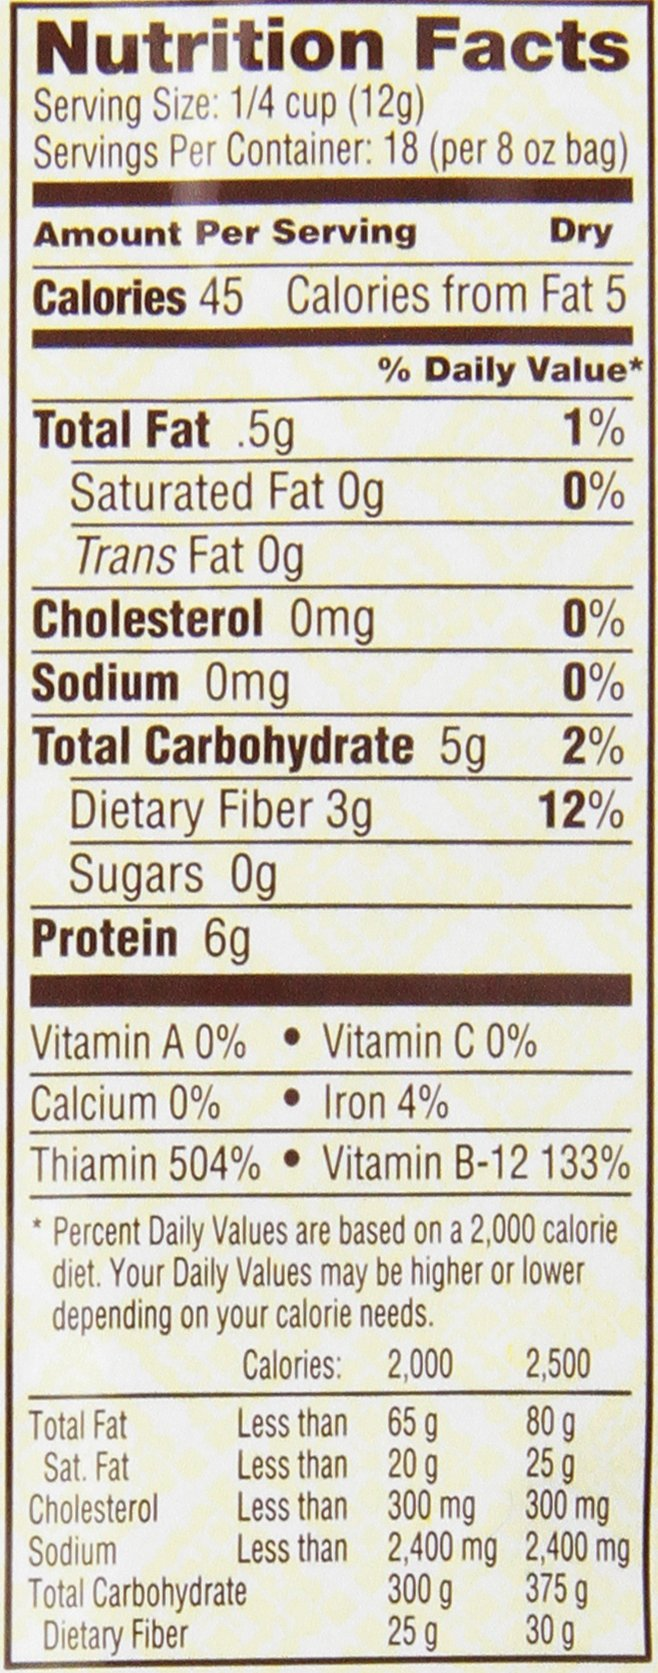 Bob's Red Mill Gluten Free Large Flake Nutritional Yeast, 8 Oz (4 Pack) by Bob's Red Mill (Image #2)